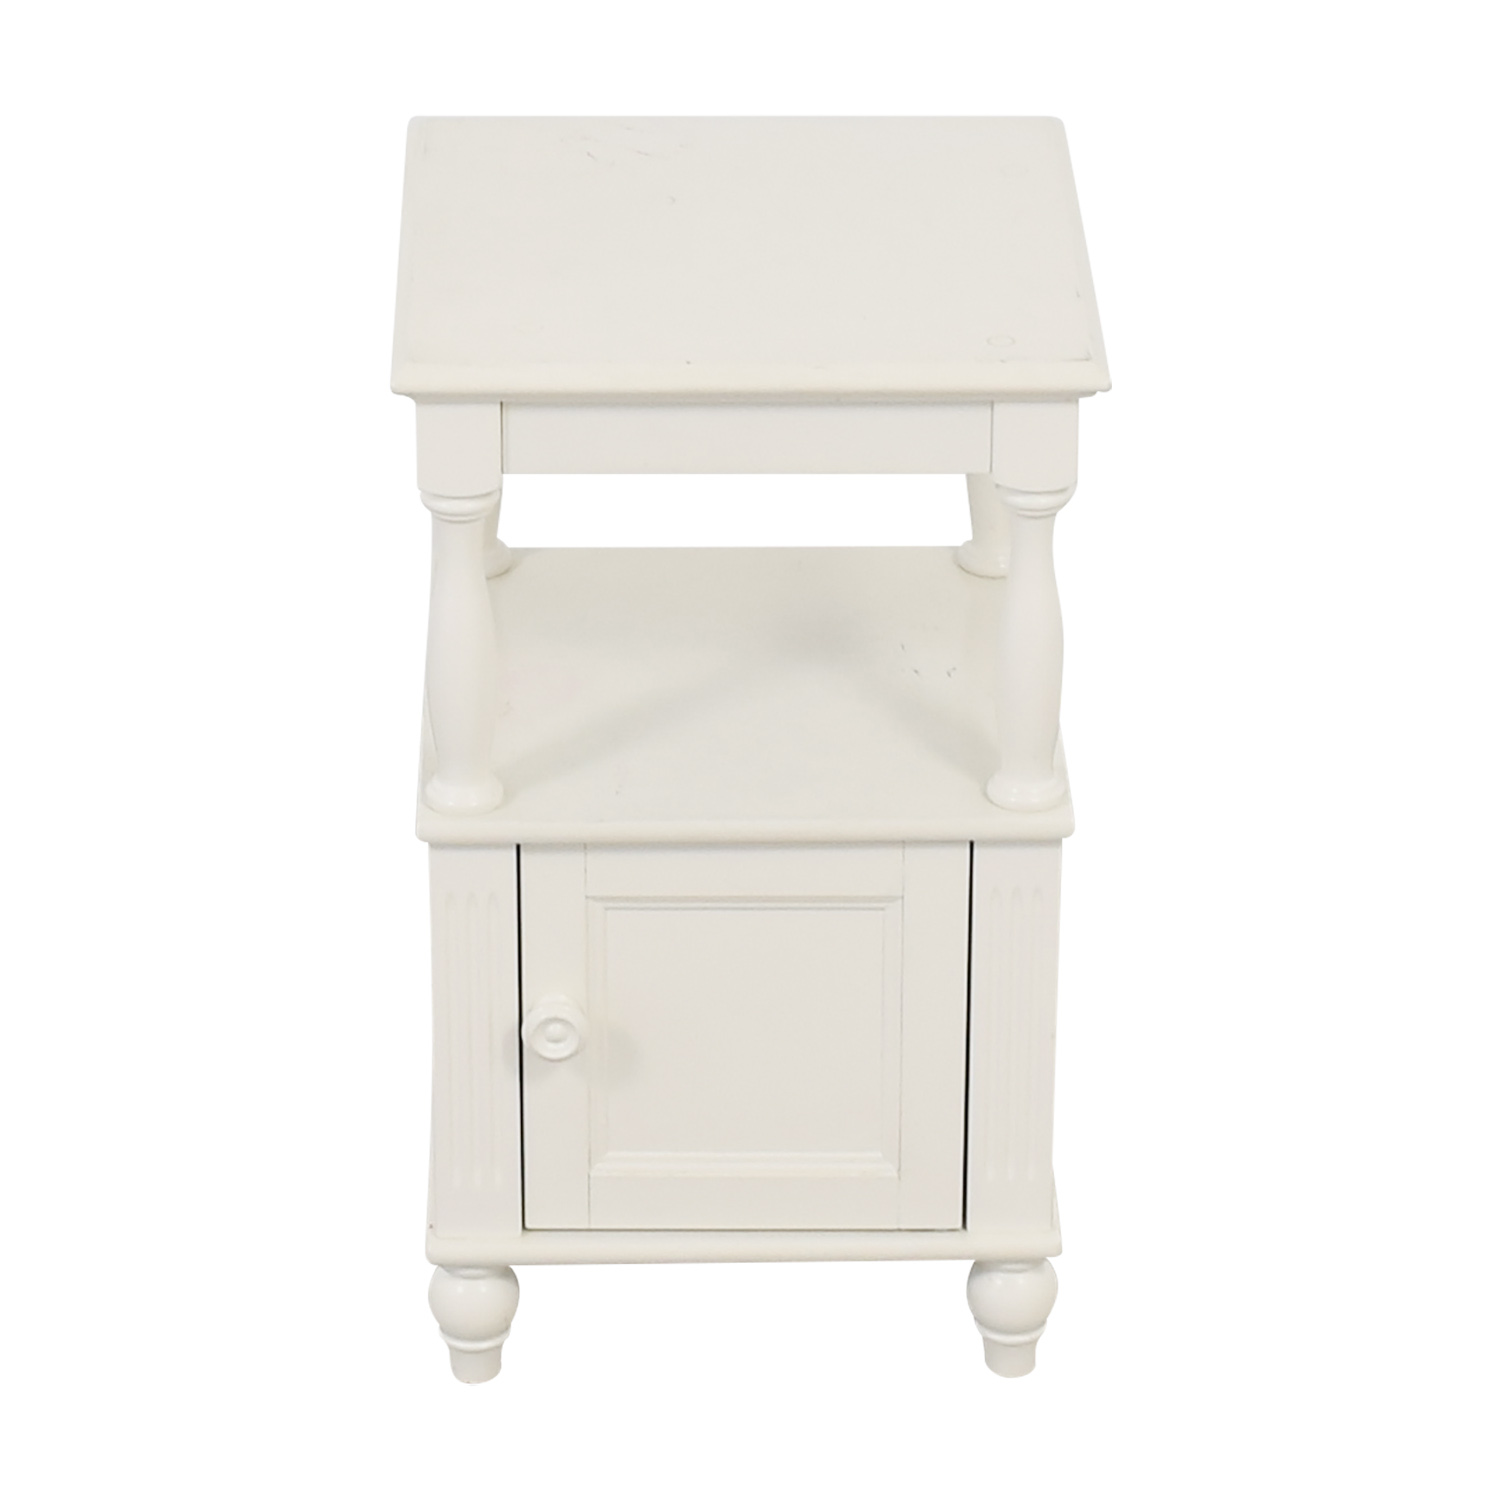 90 Off Custom Made Glass Top Wooden Nightstand Tables